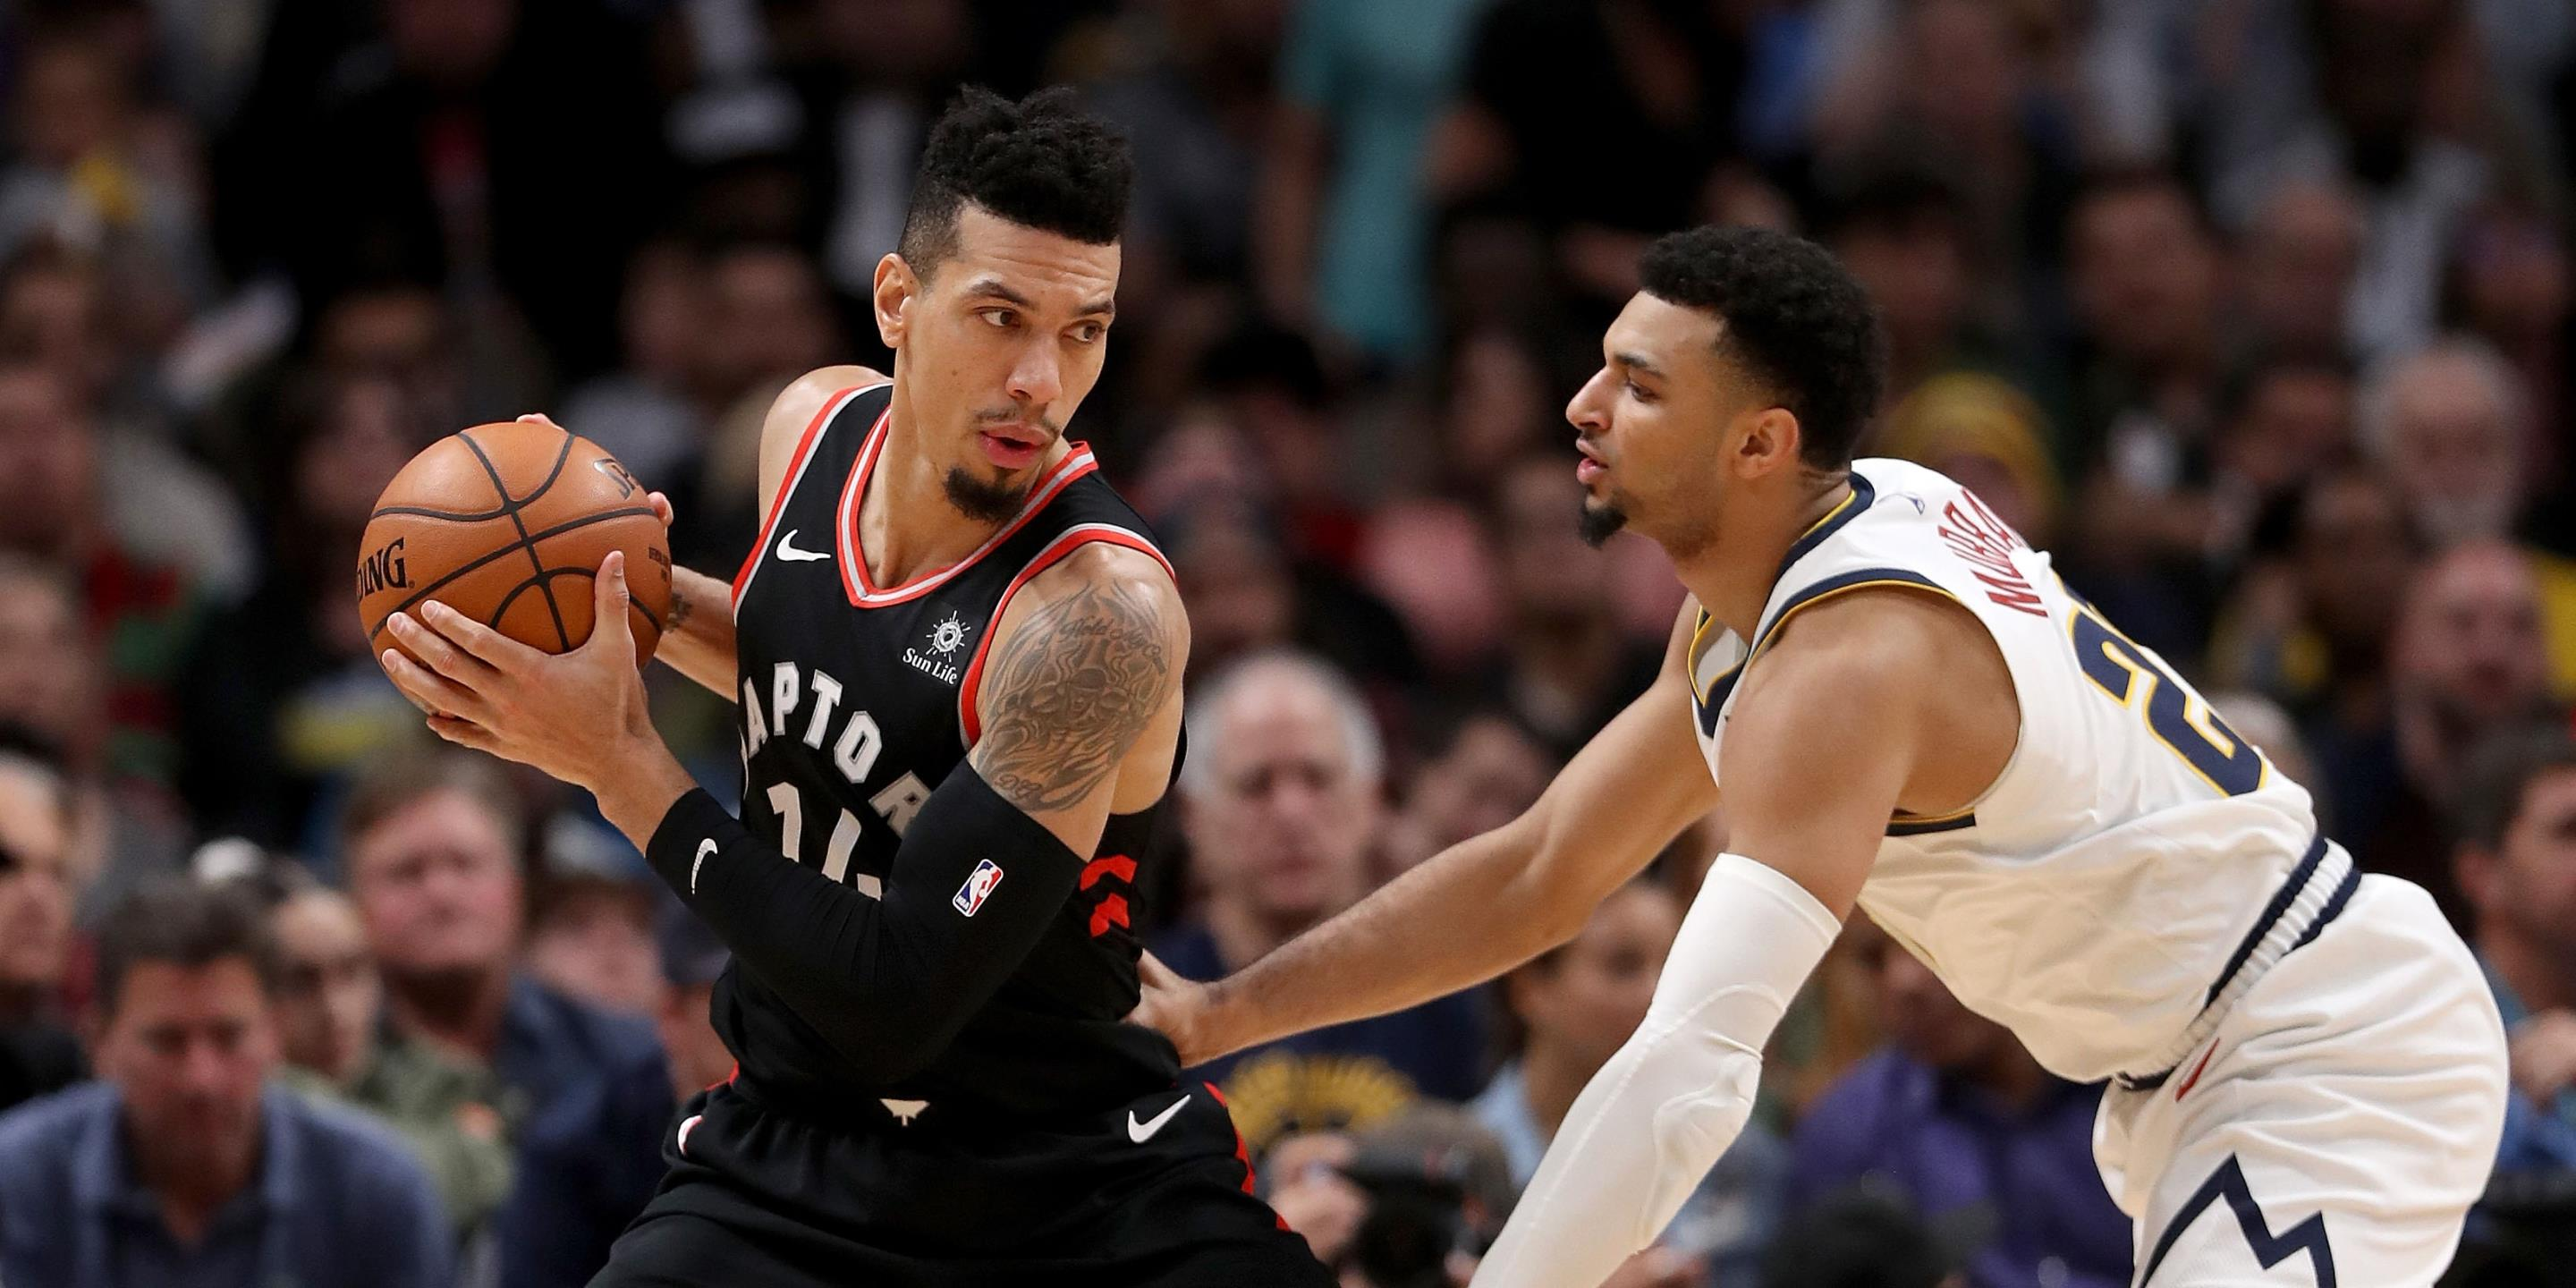 Nba Player Danny Green On Training Plans Diet And More Furthermore